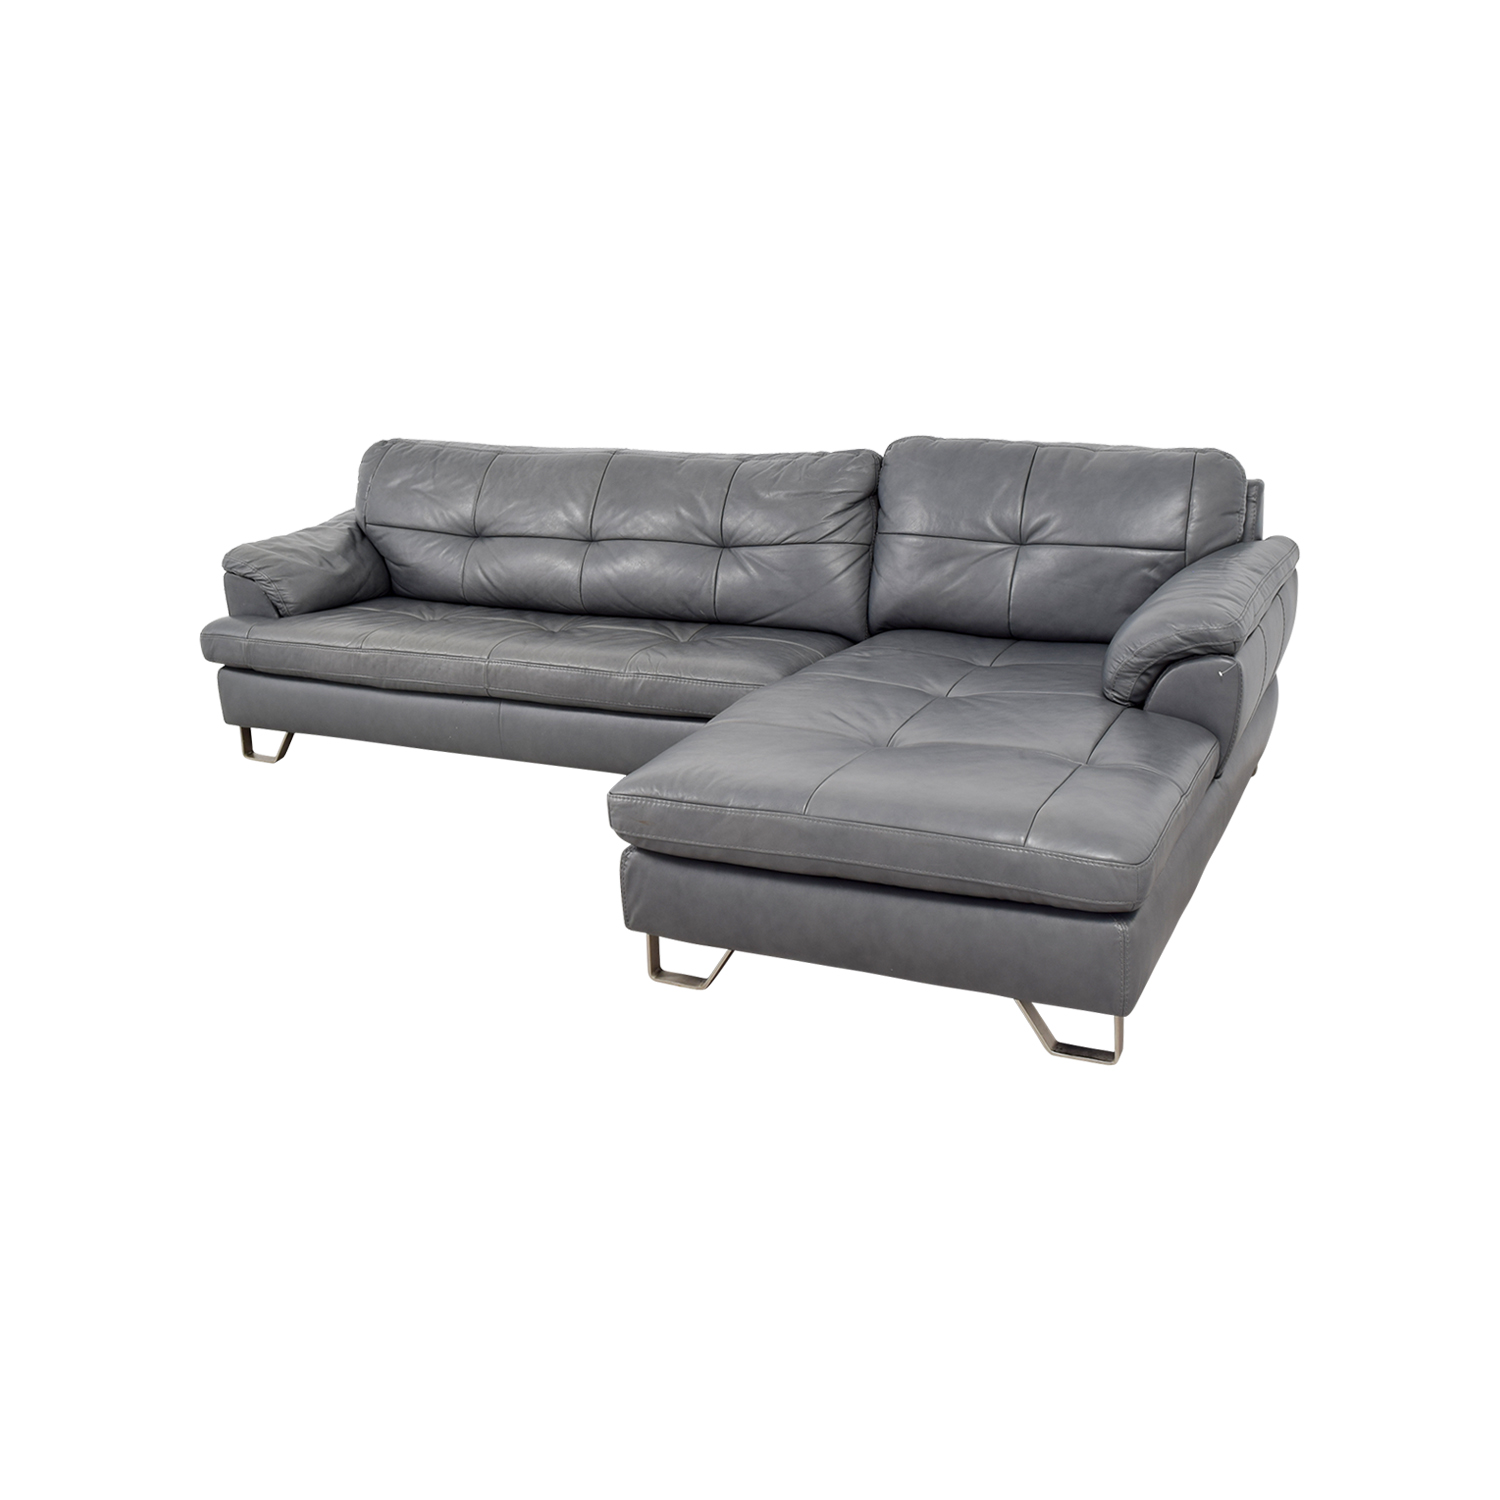 83% OFF - Ashley Furniture Ashley Furniture Gray Tufted Sectional Sofa /  Sofas